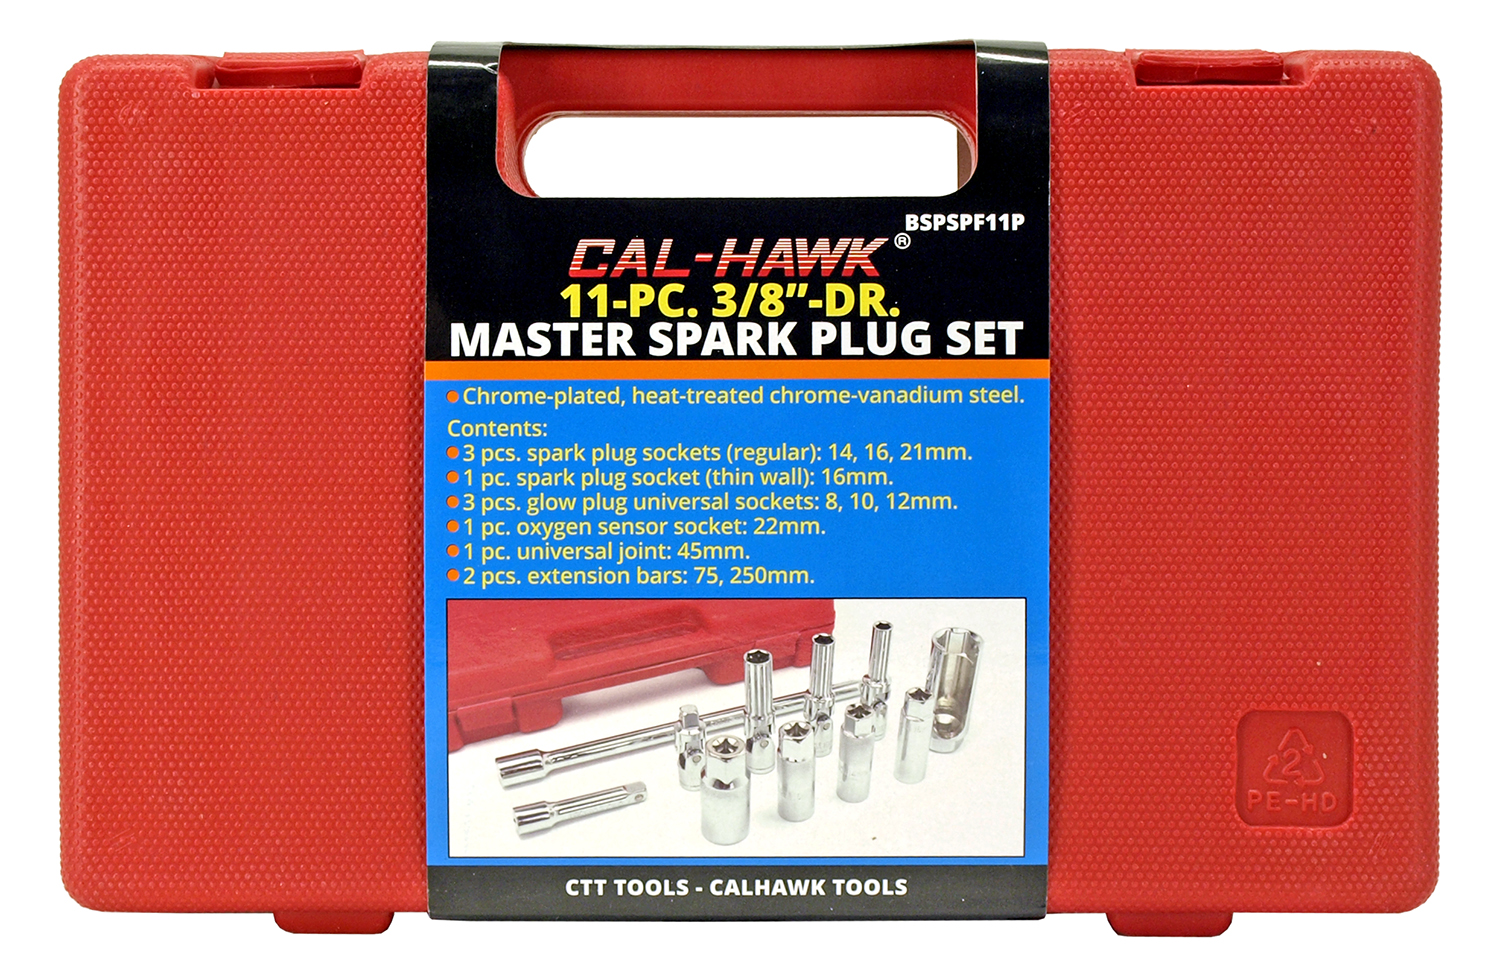 11 - pc. 3/8 in DR. Master Spark Plug Set